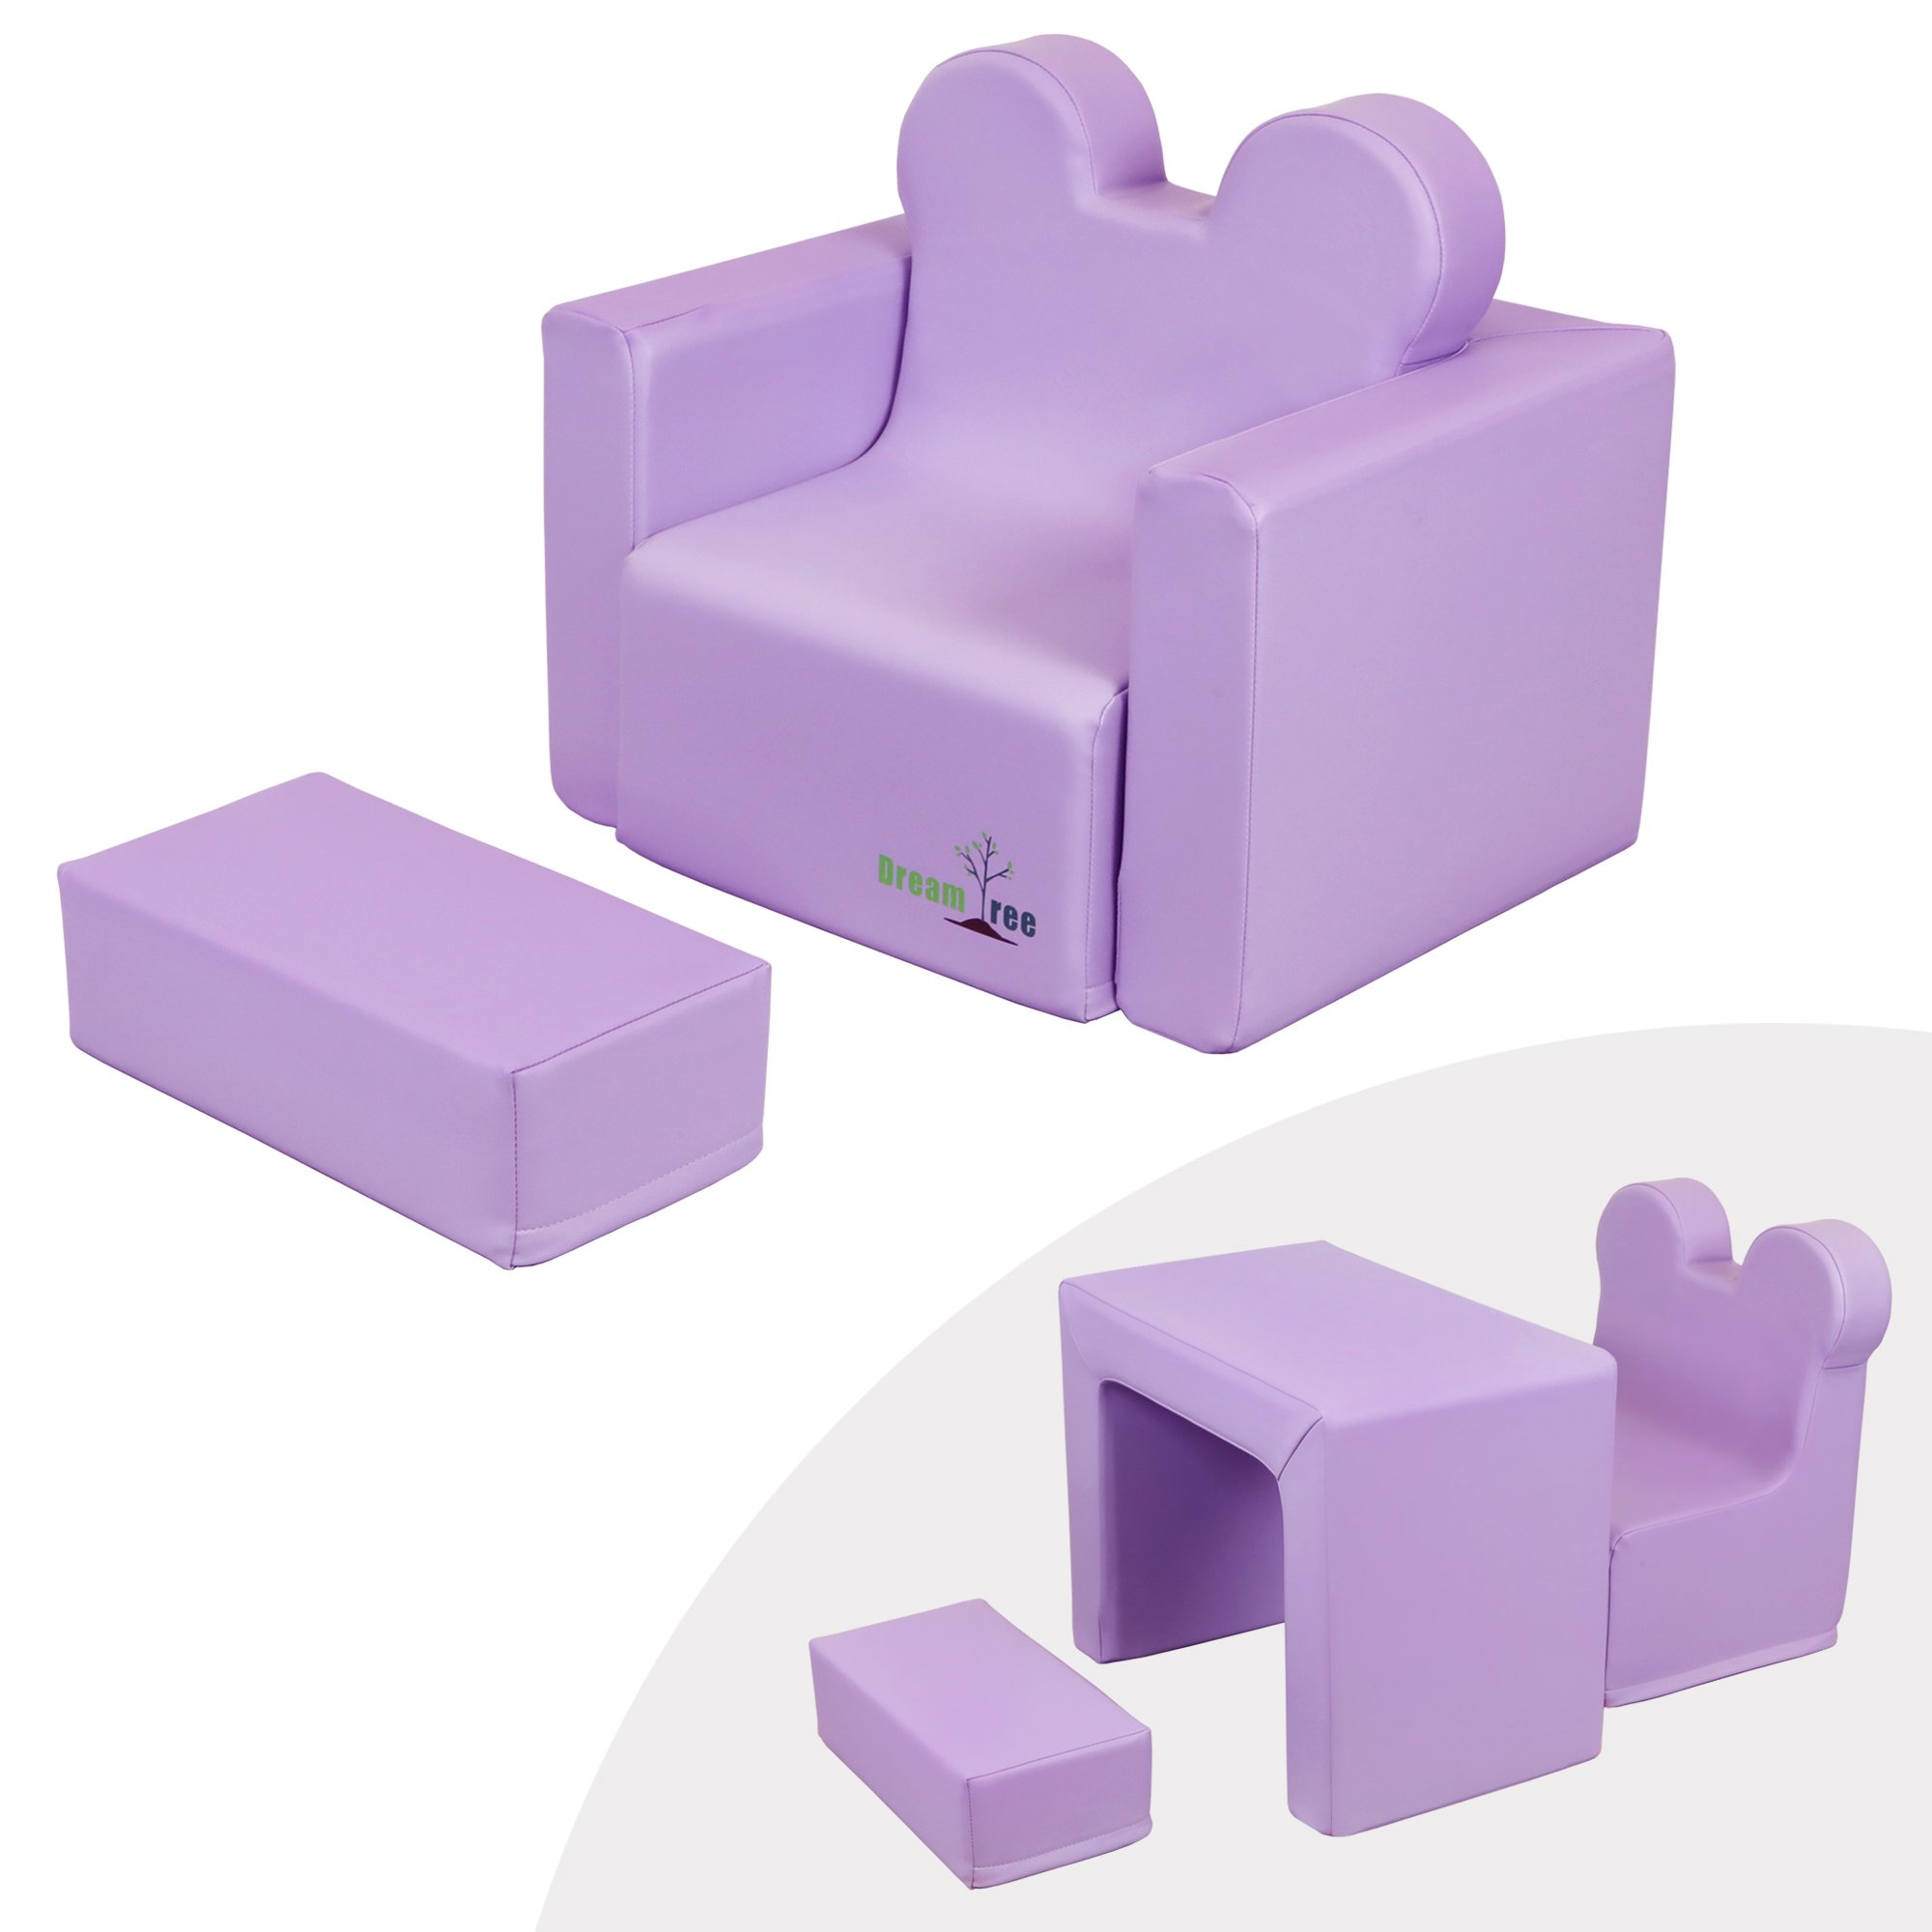 Dream Tree Toddler Table and Chair Set (Sofa Type) Washable, Safe Non-Toxic CPSIA Compliant Soft Foam Furniture for Baby, Kids, and Child - Lavender